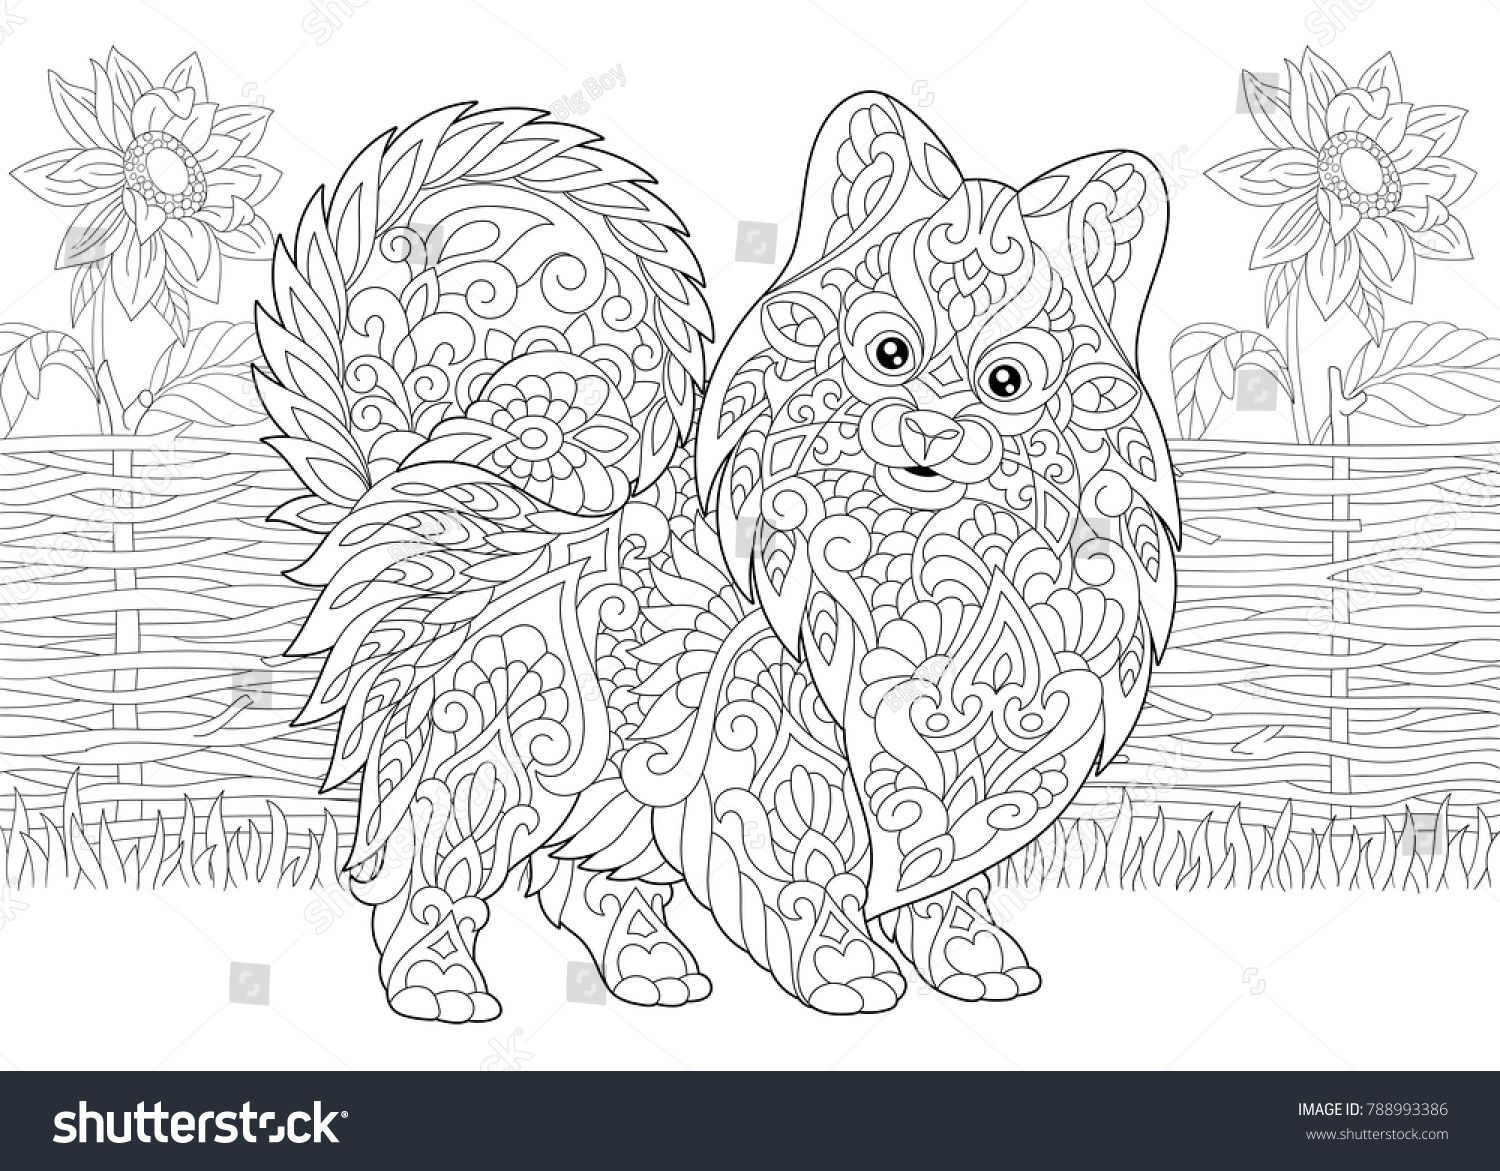 Coloring Page Adult Coloring Book Pomeranian Spitz Dog Symbol